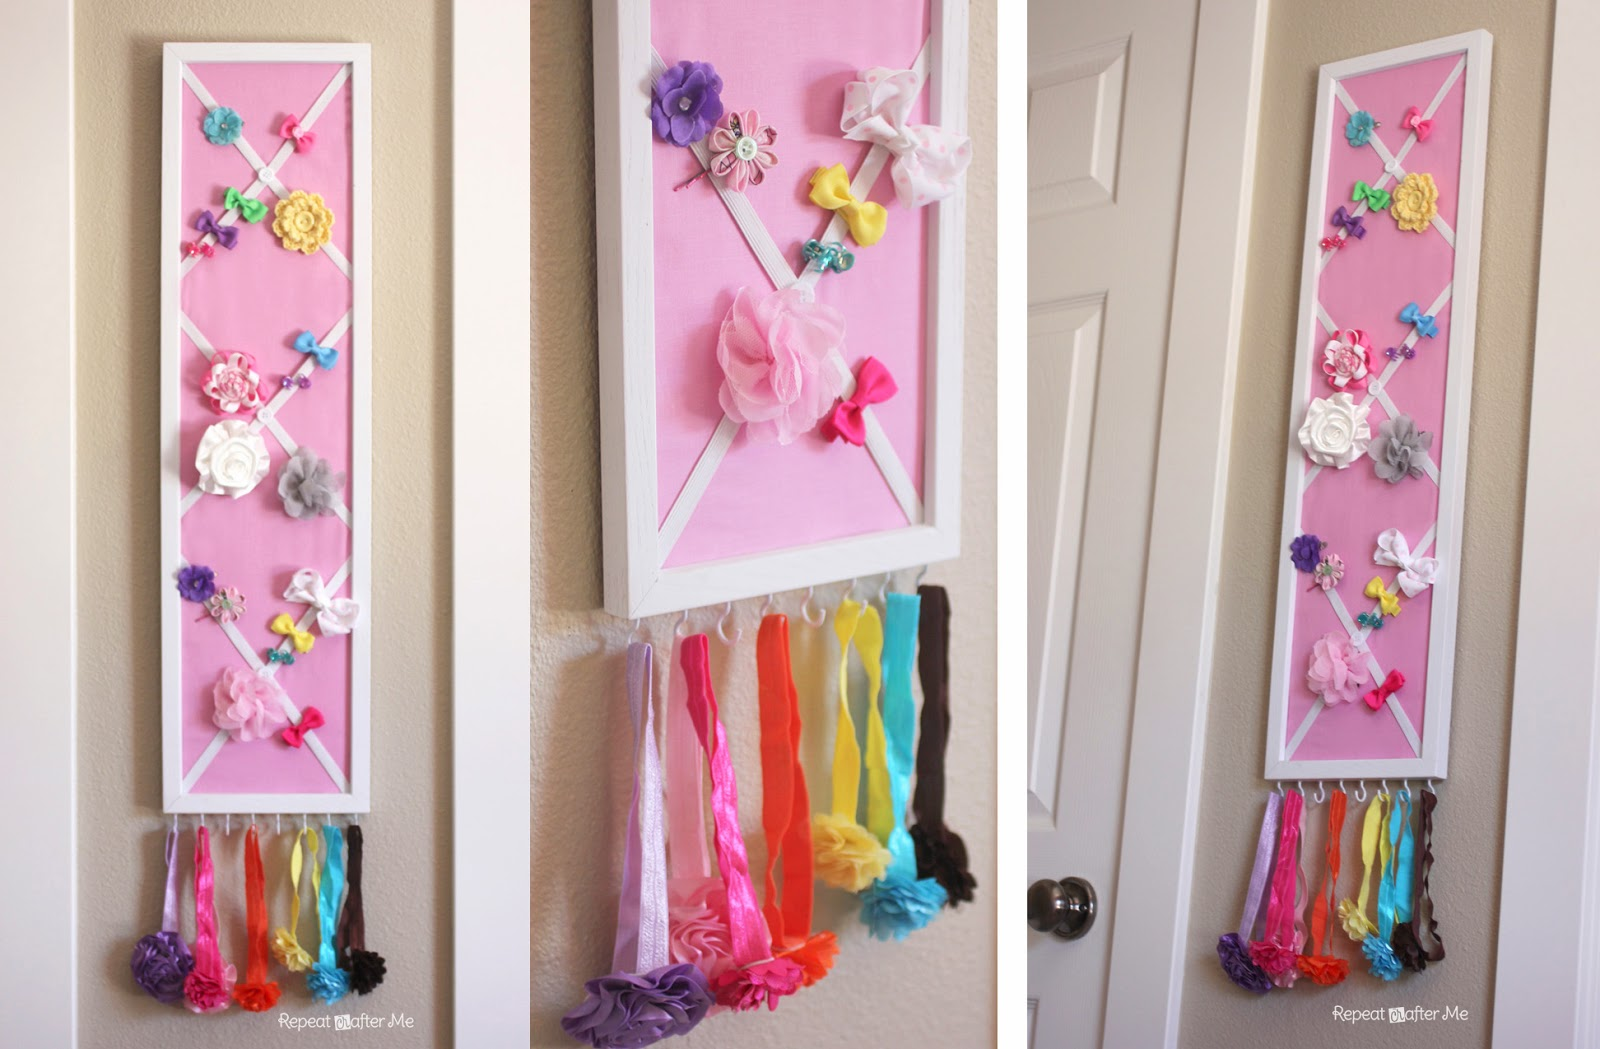 Baby Girl Nursery DIY decorating ideas - Repeat Crafter Me